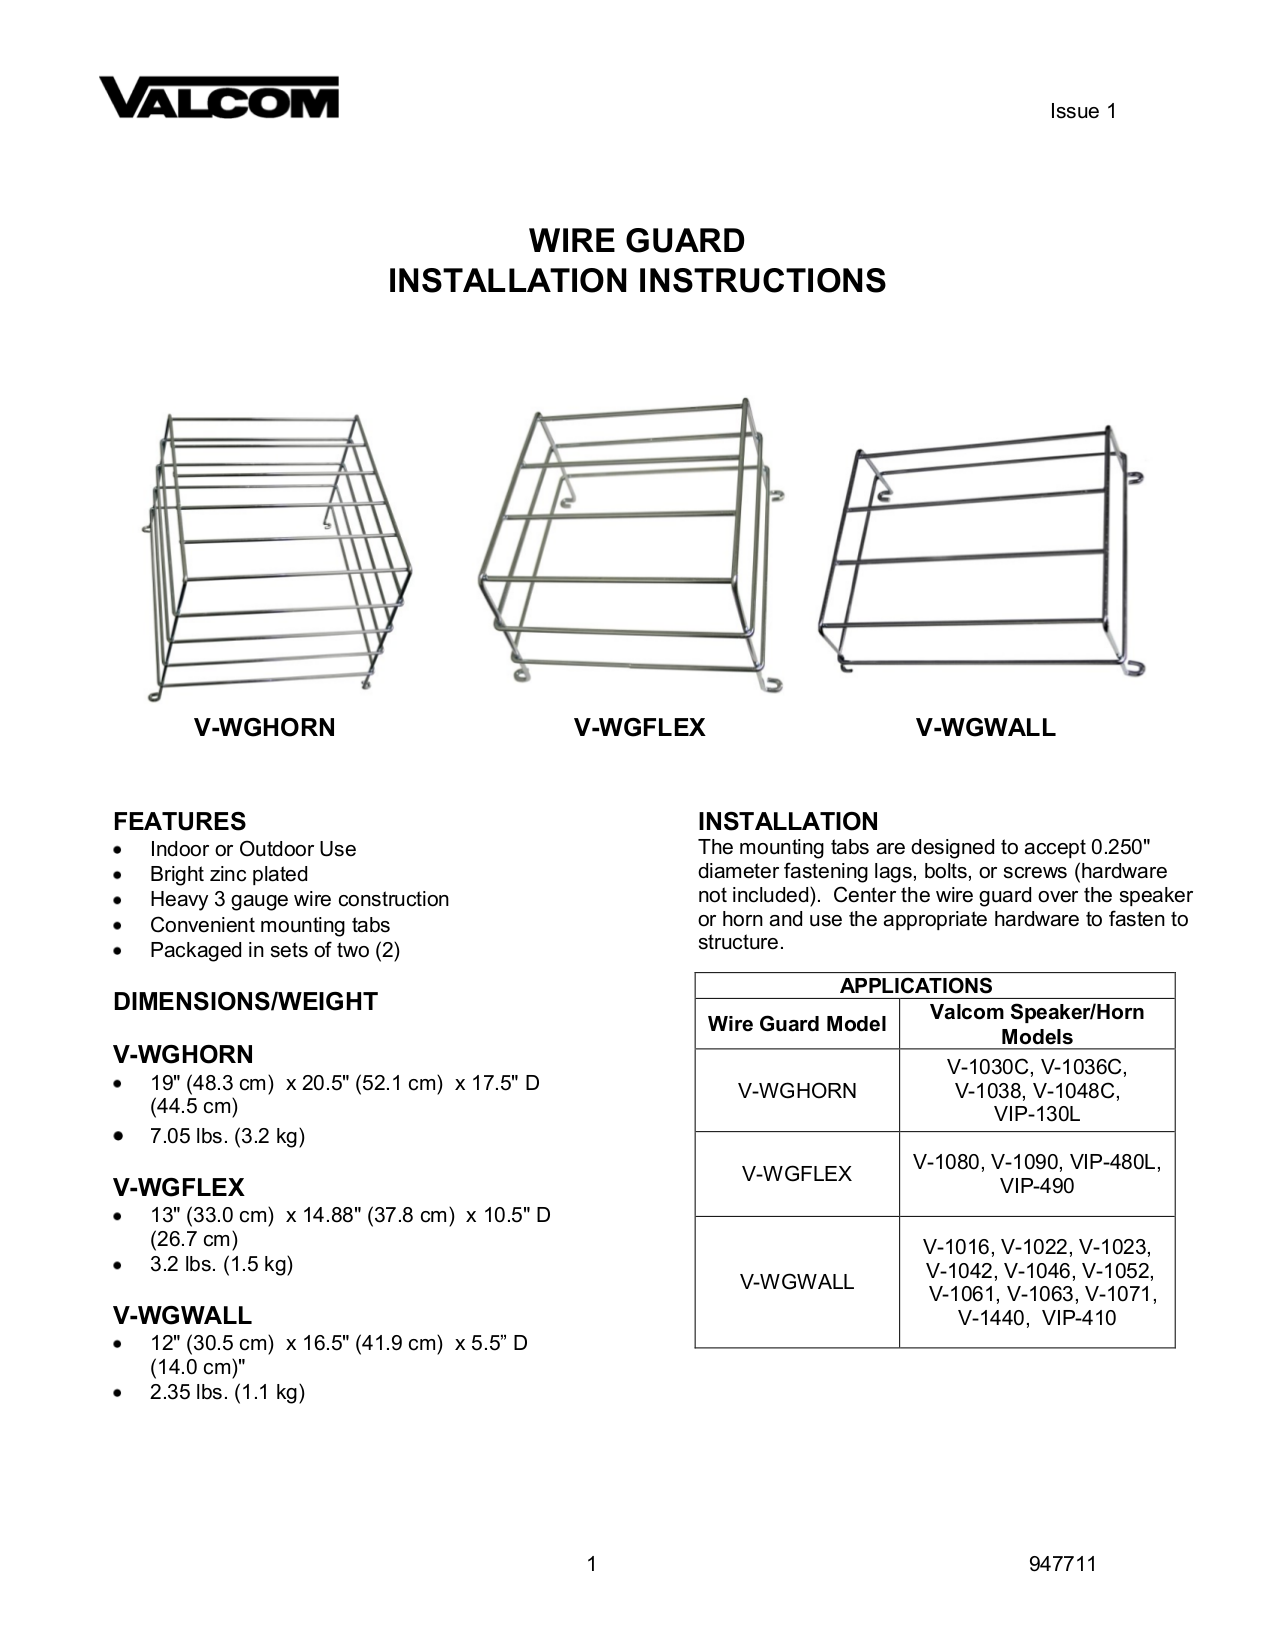 Valcom V WGWALL 2 V WGHORN 2 V WGFLEX 2 Wire Guard Installation Manual.pdf 0 download free pdf for valcom v1036c horns other manual  at bayanpartner.co